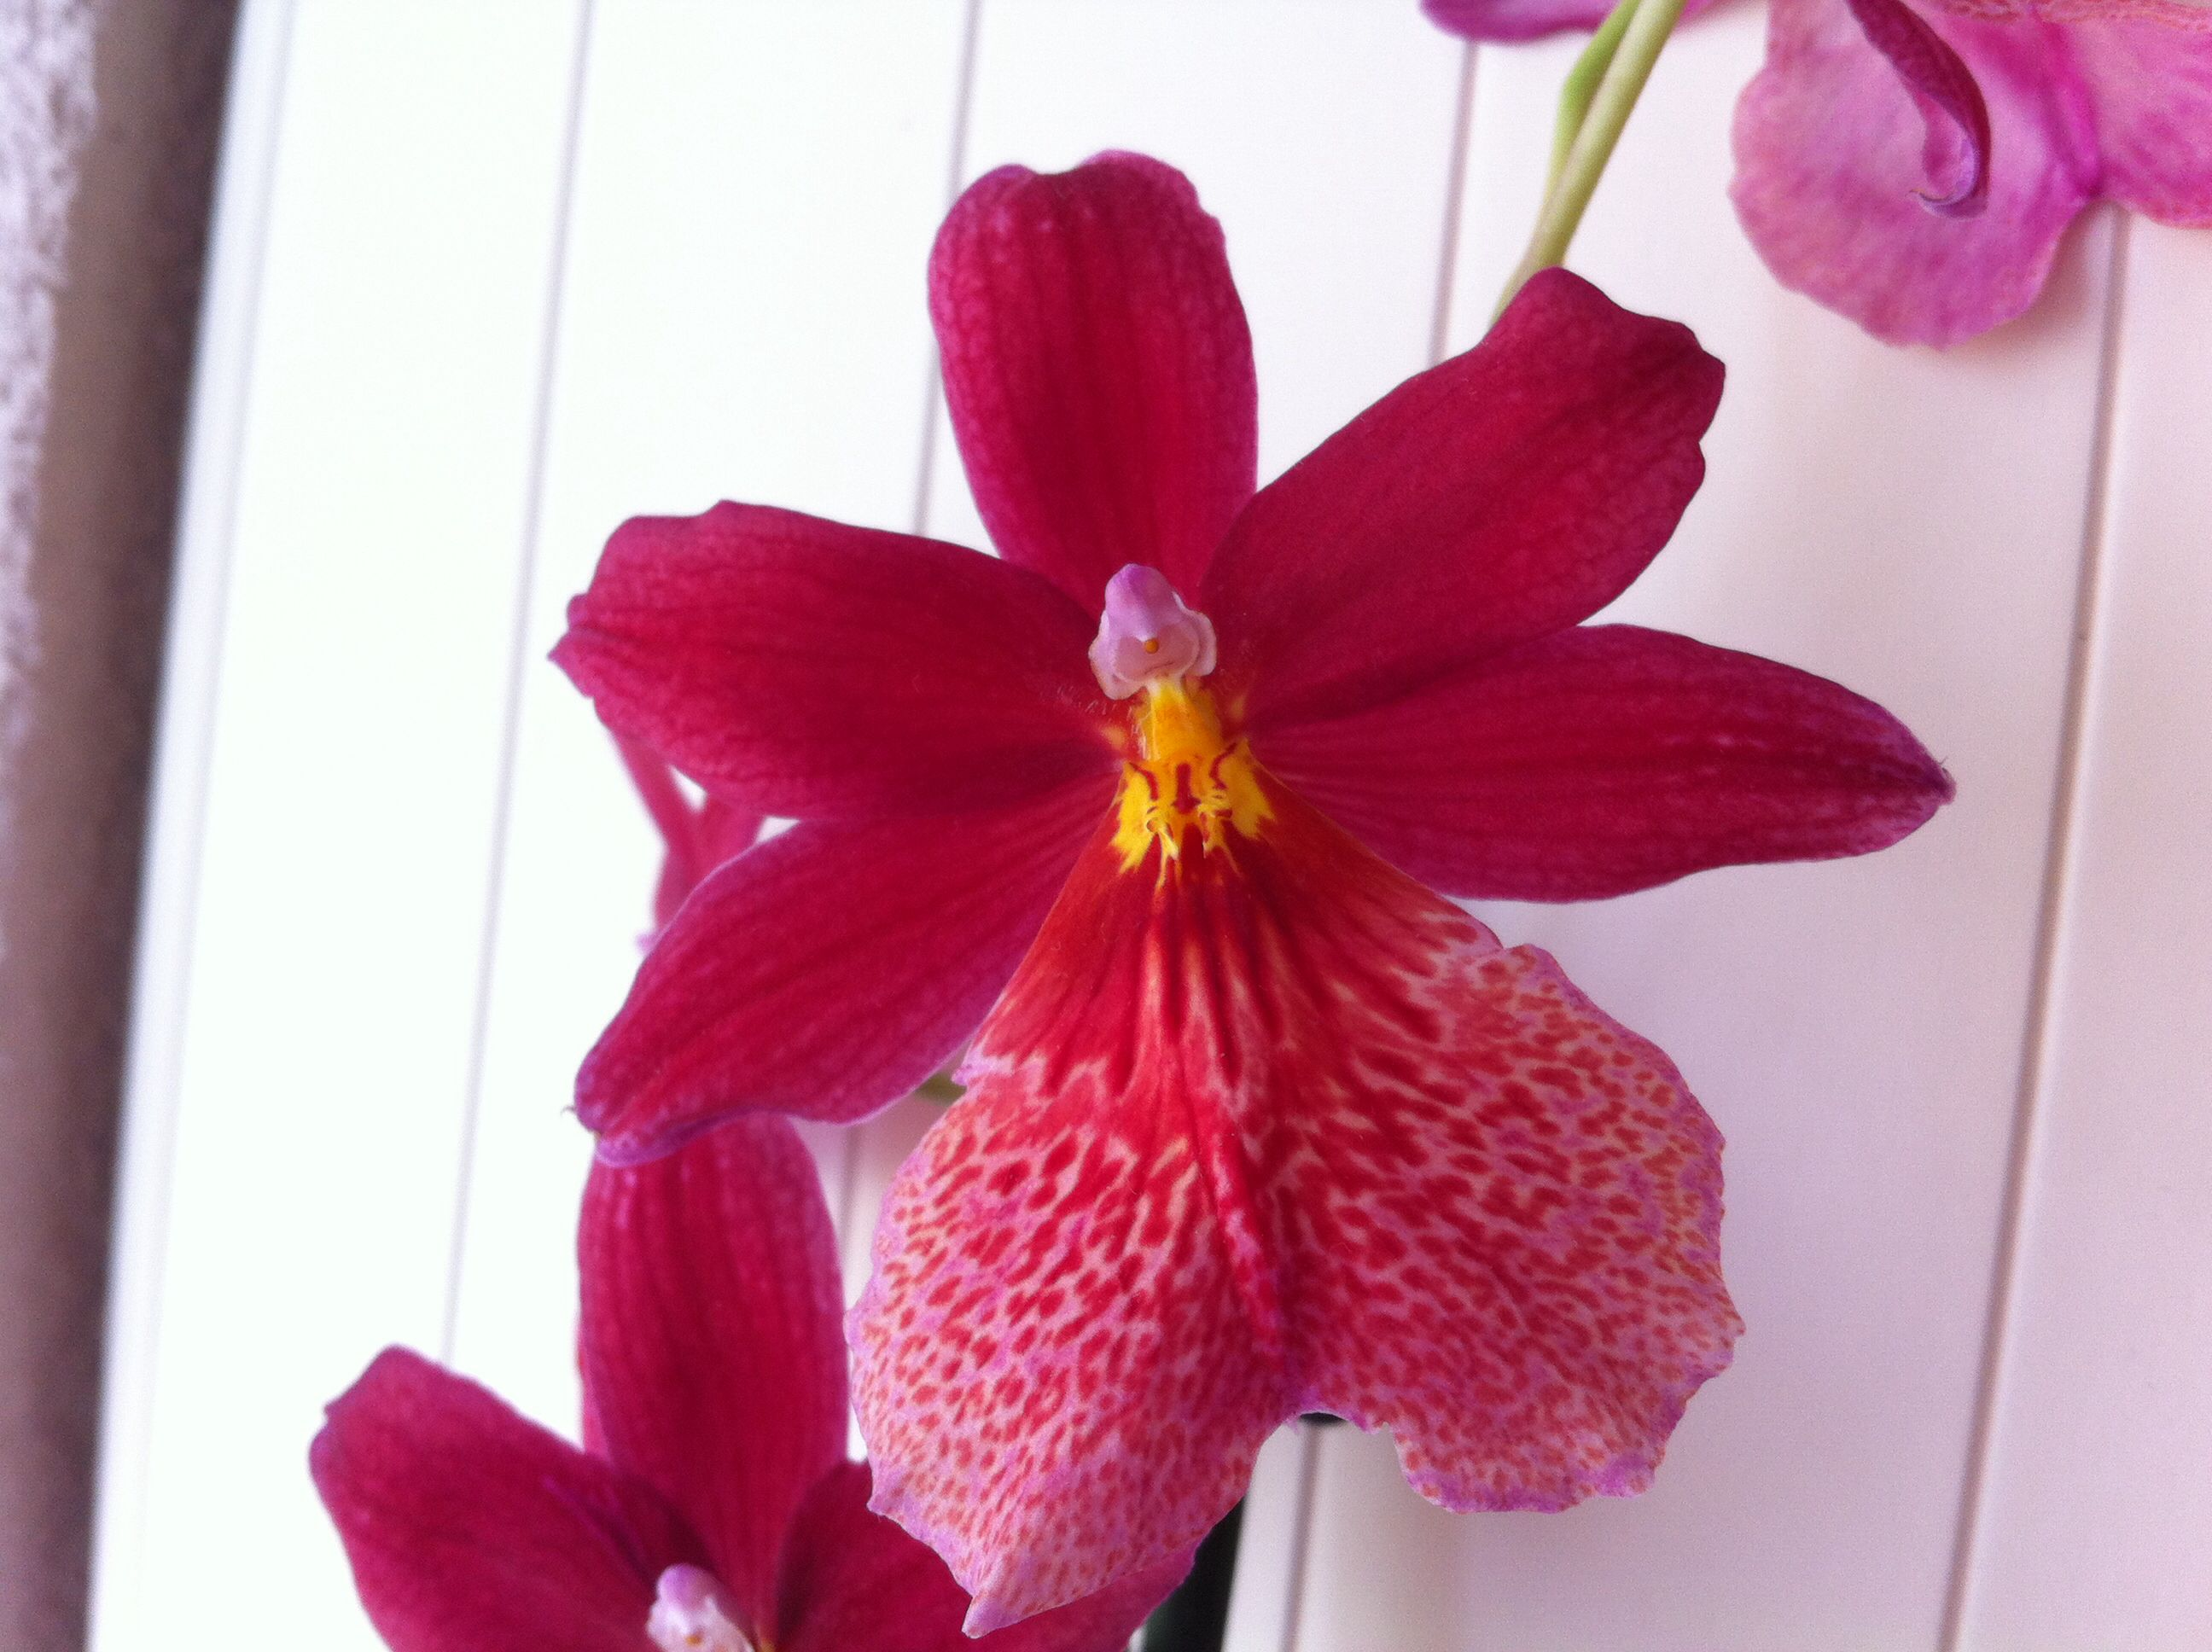 Orchidee rot